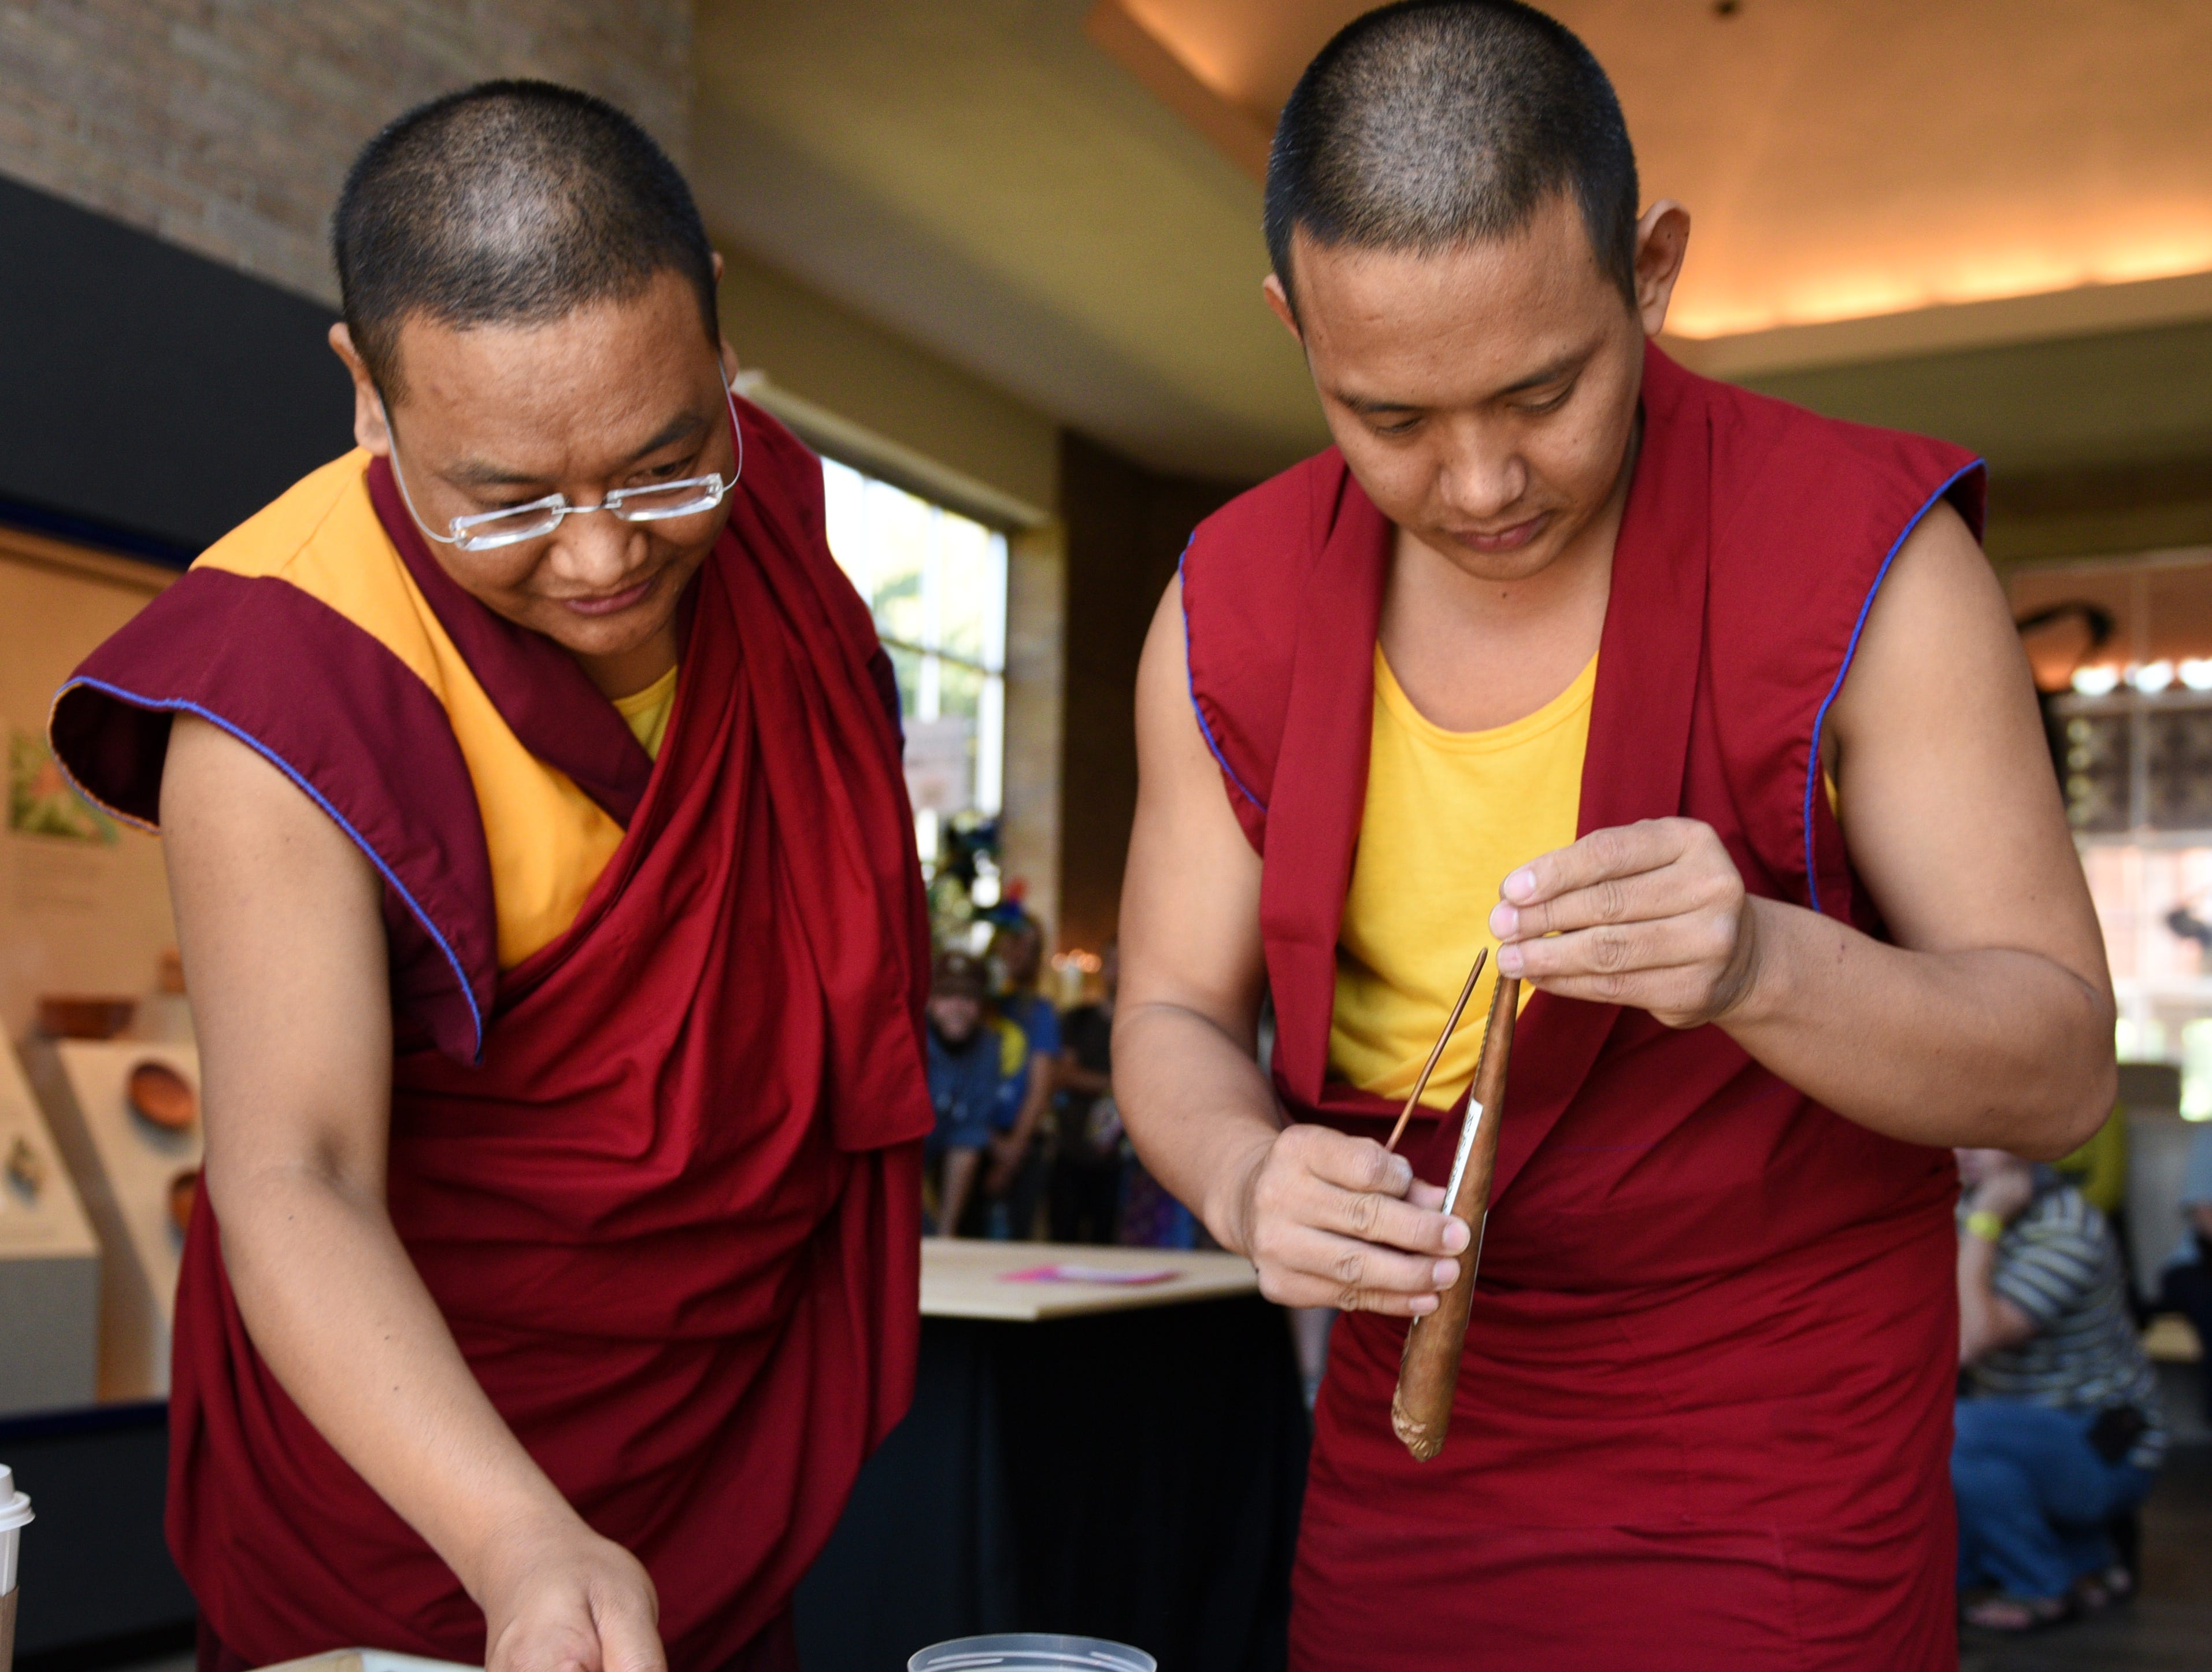 Tibetan Buddhist monks Geshe Thupten Loden, left, and Lobsang Tashi prepare elements for the community sand mandala painting at the McClung Museum Tuesday, Sep. 22, 2015. They chanted during an opening ceremony before starting their sand mandala in another room.